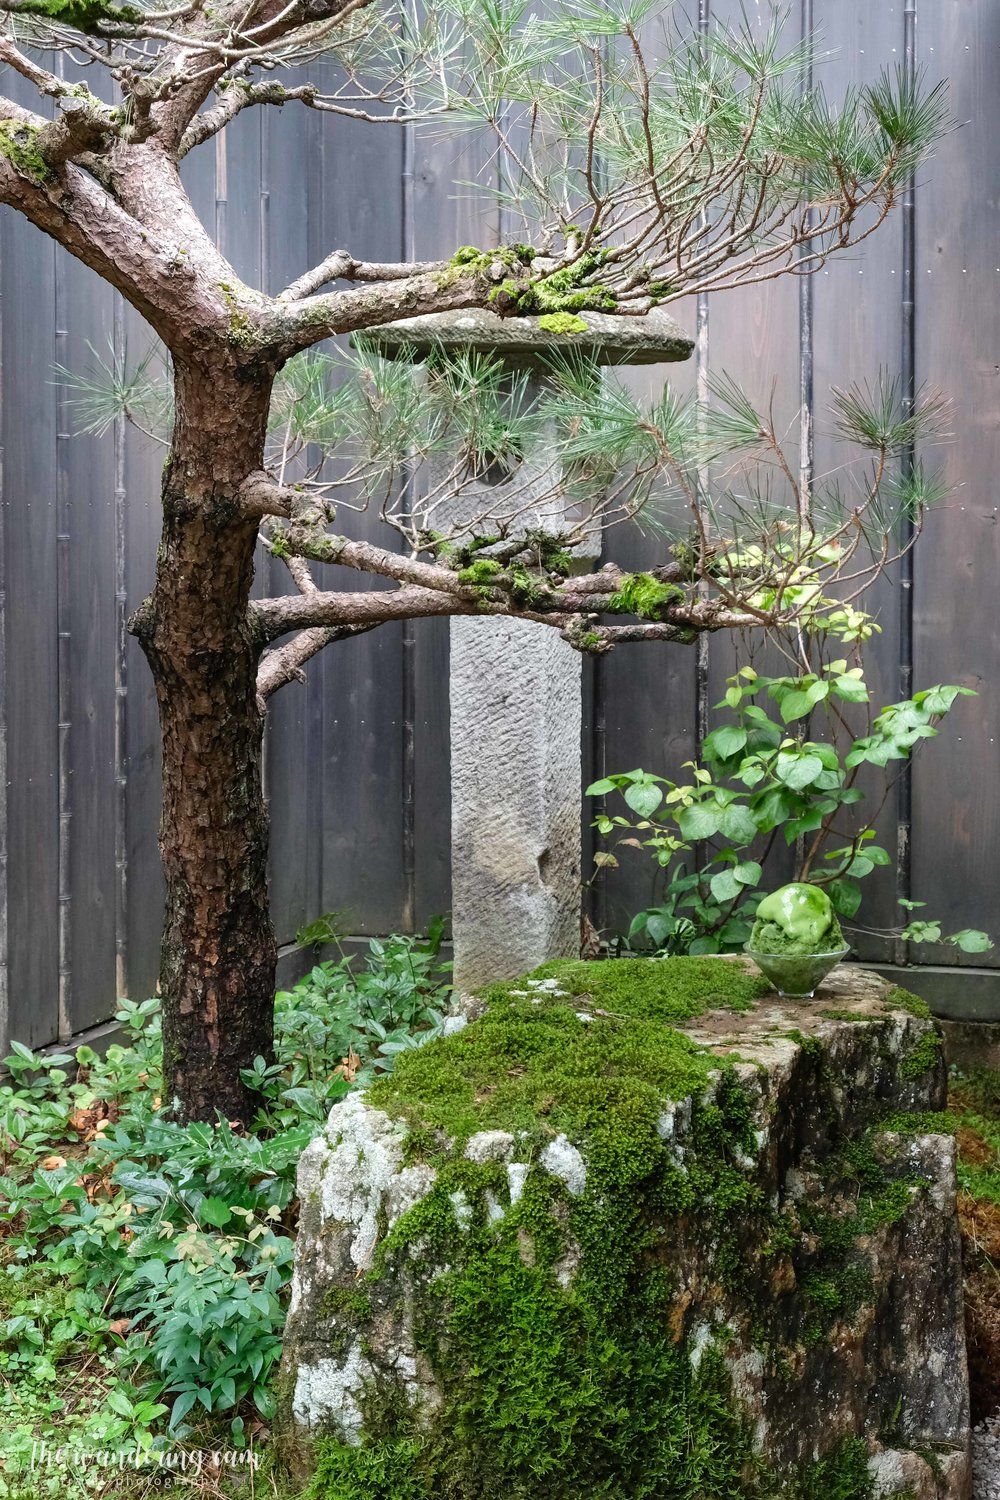 Can you spot the kakigori? It looks like it is grown from the moss…